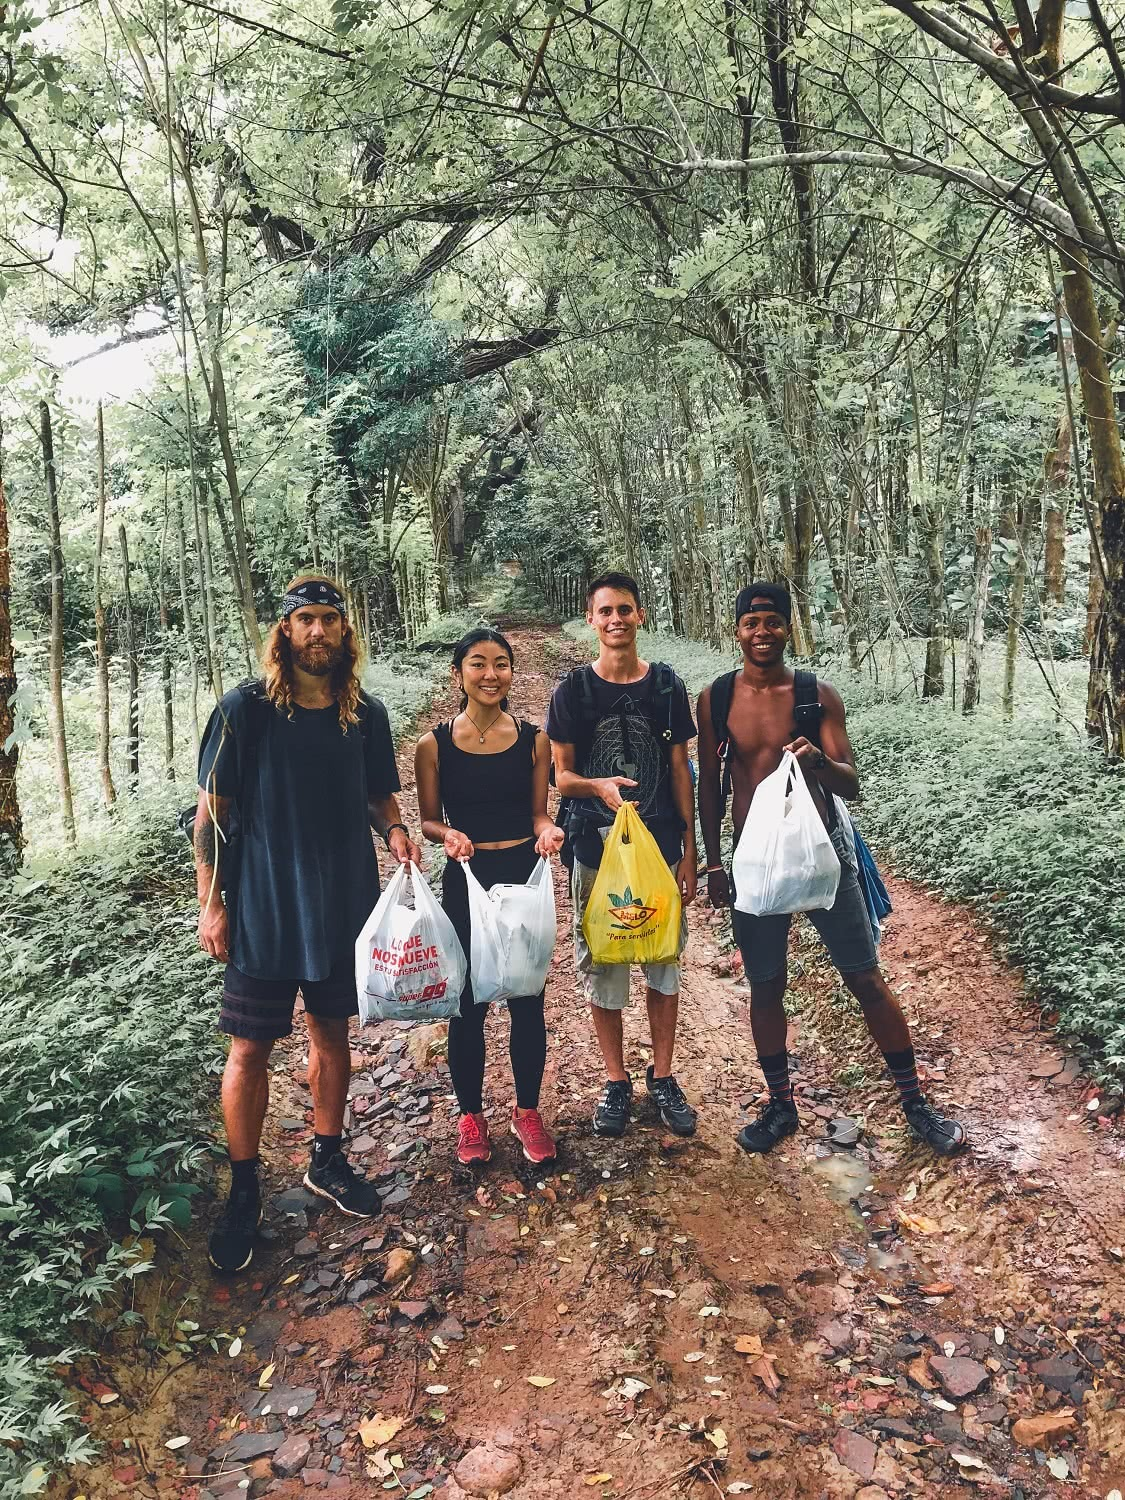 Grab An Adventure Bag And Get Out There! Jackson Groves clean up forest